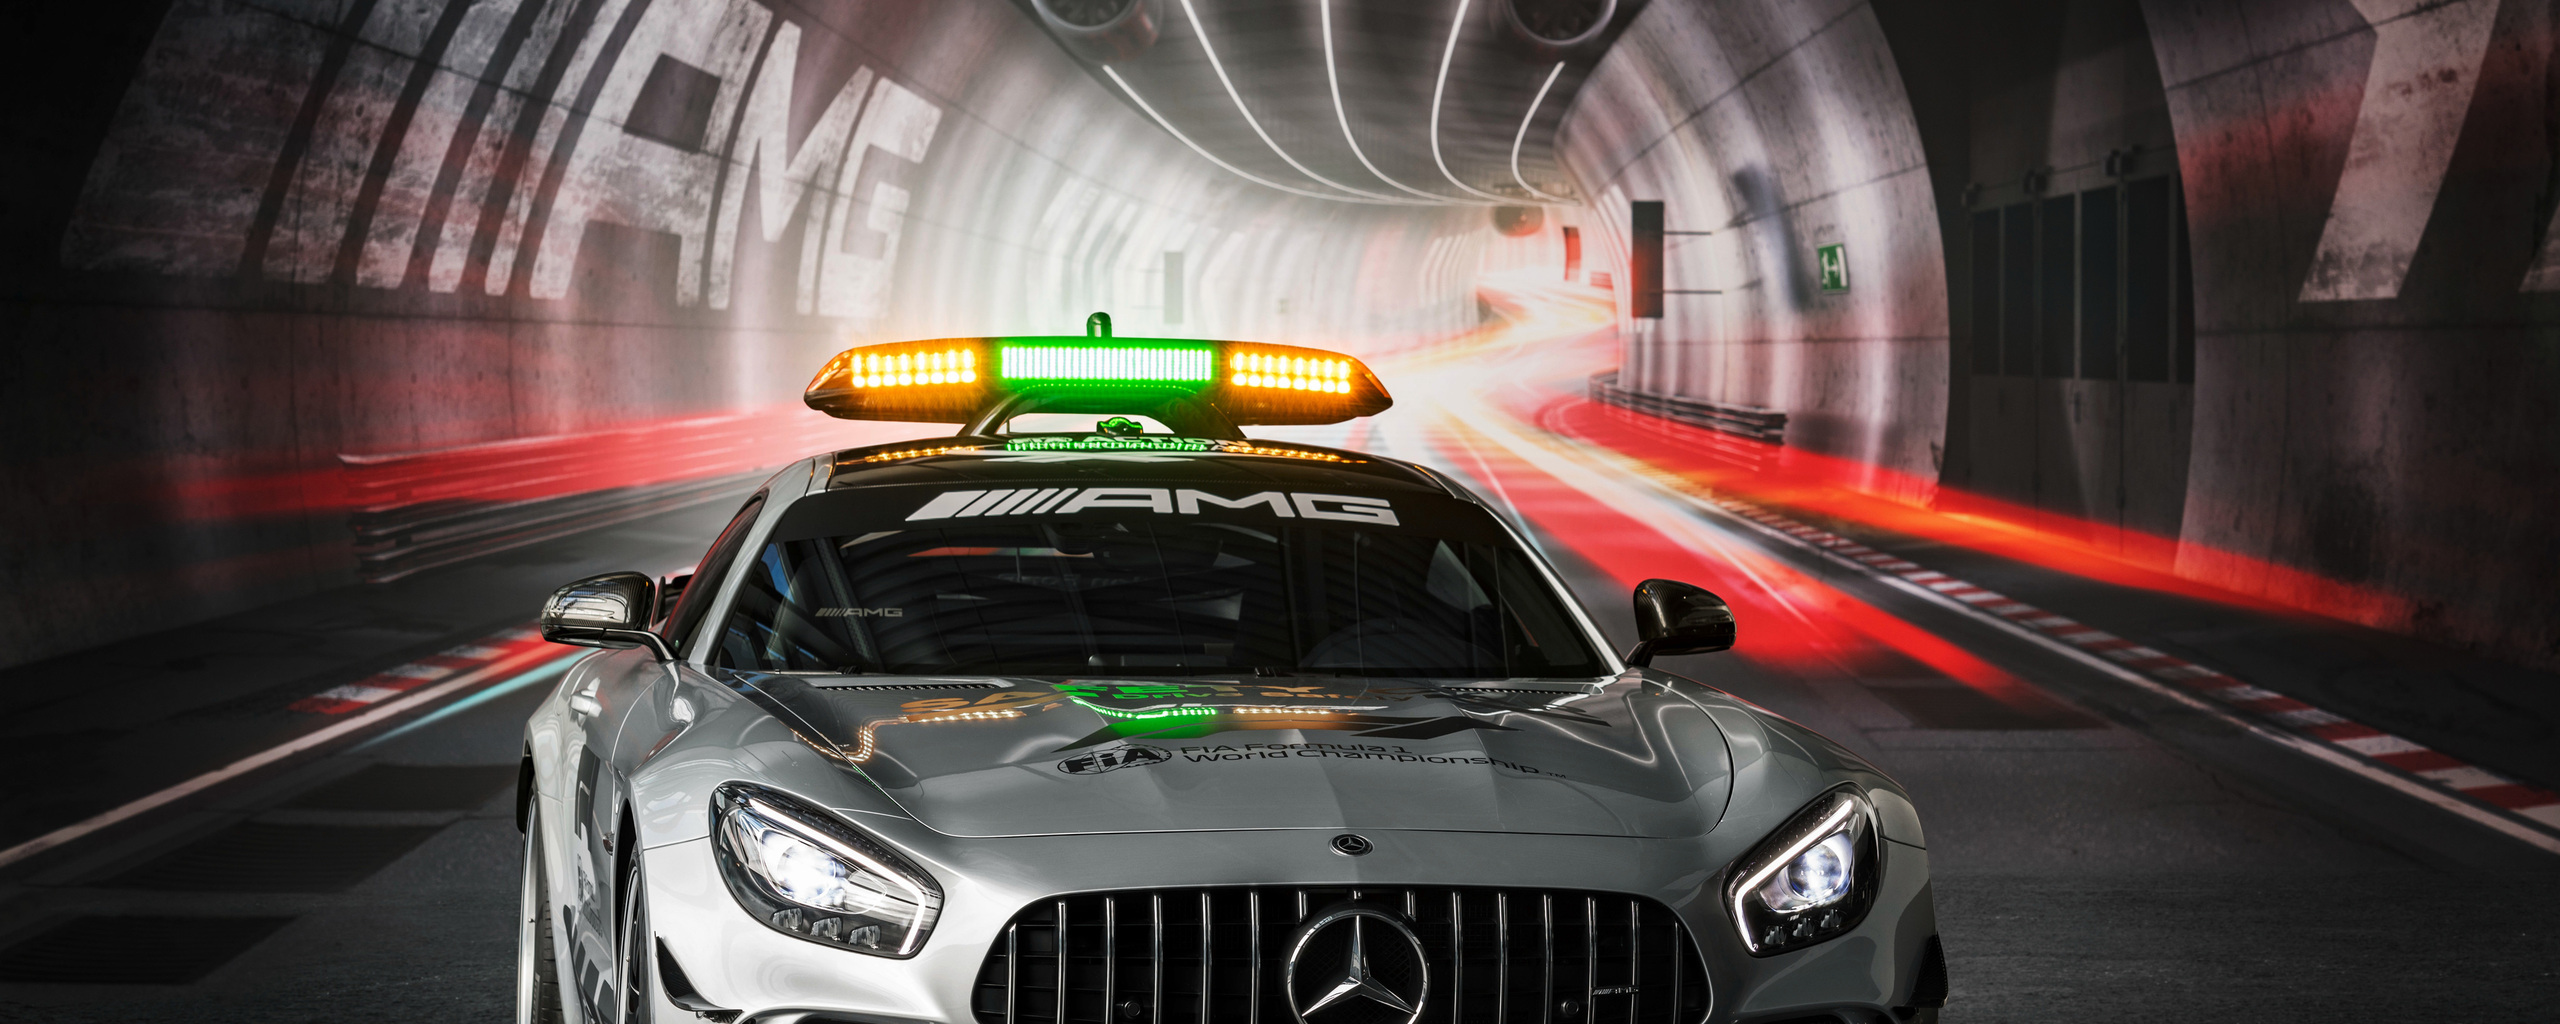 mercedes-amg-gt-r-f1-safety-car-ep.jpg